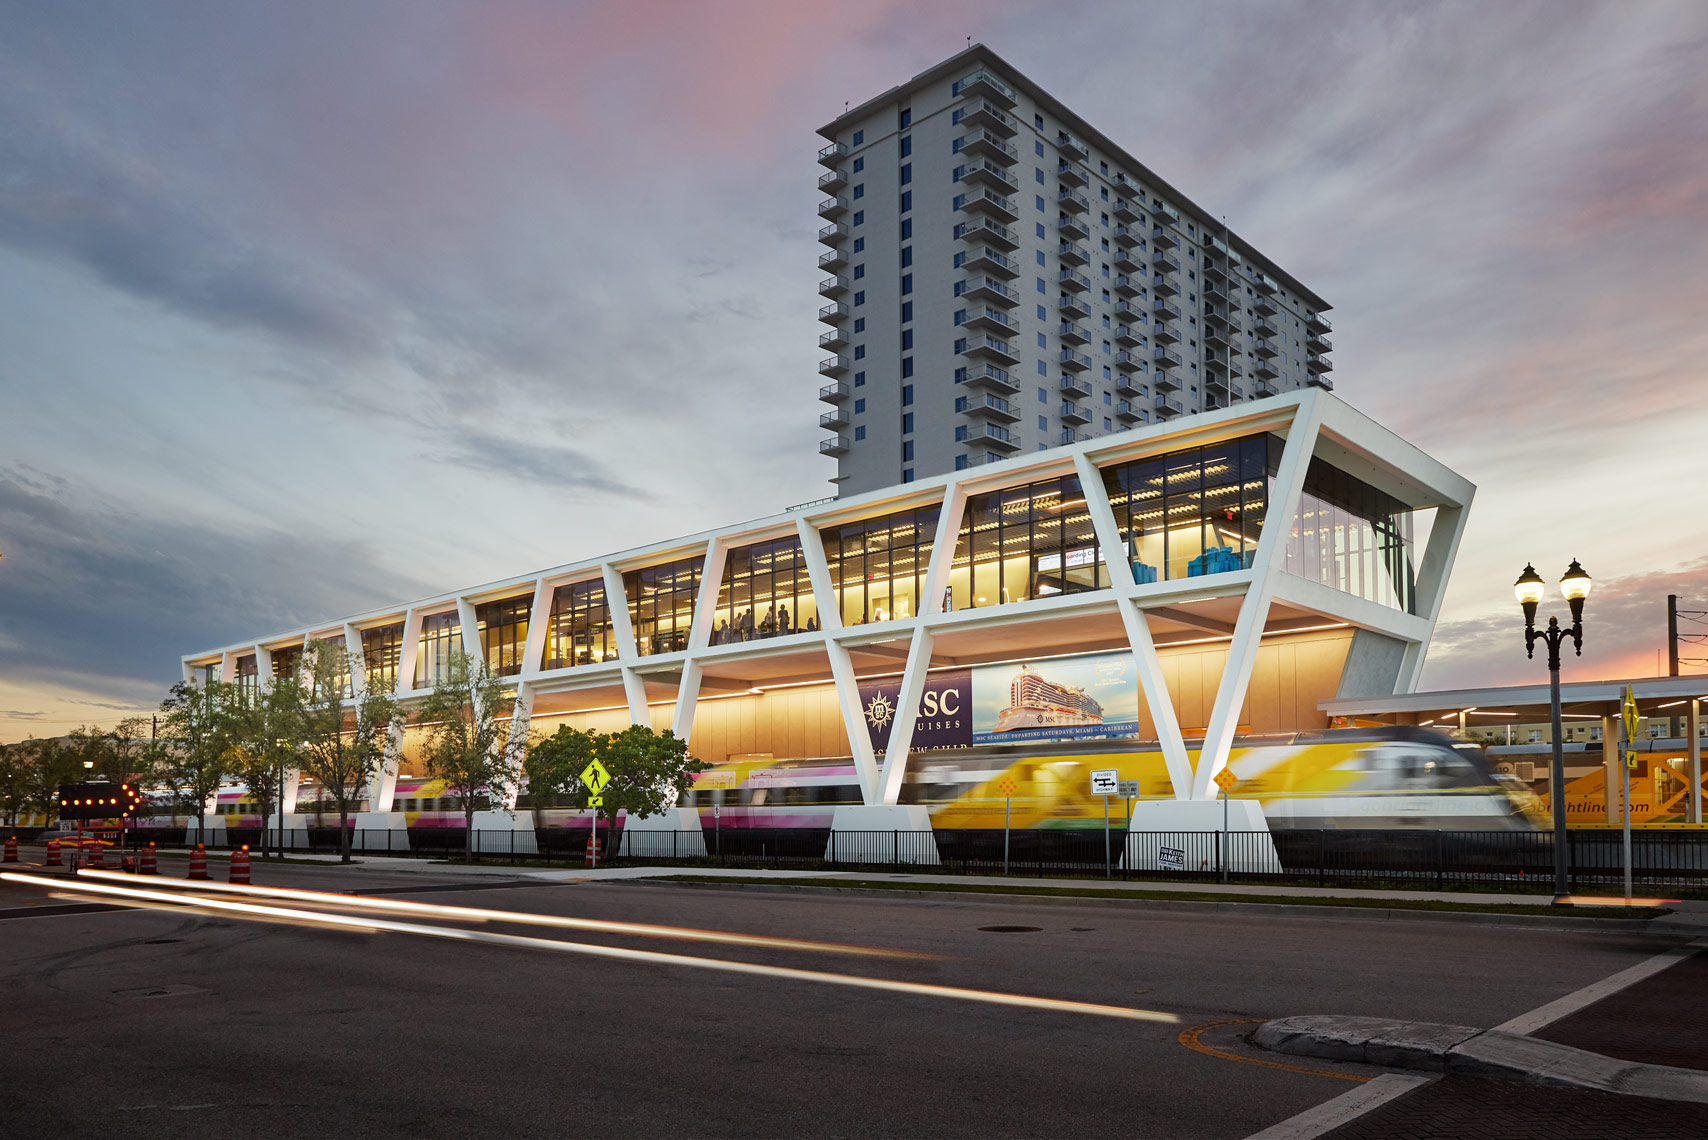 west palm beach brightline train station